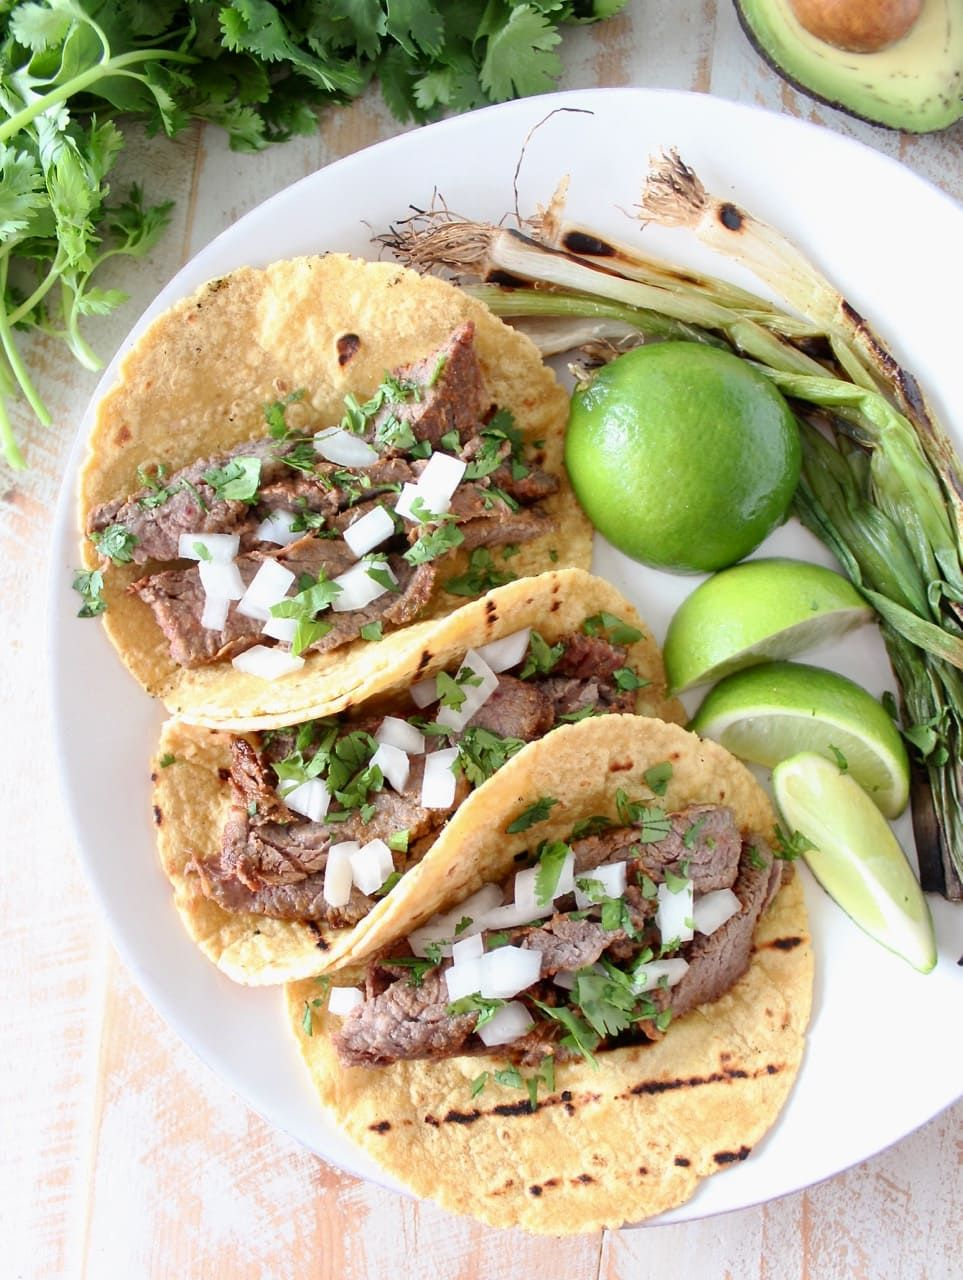 The BEST Carne Asada Tacos Recipe (with video!) - WhitneyBond.com